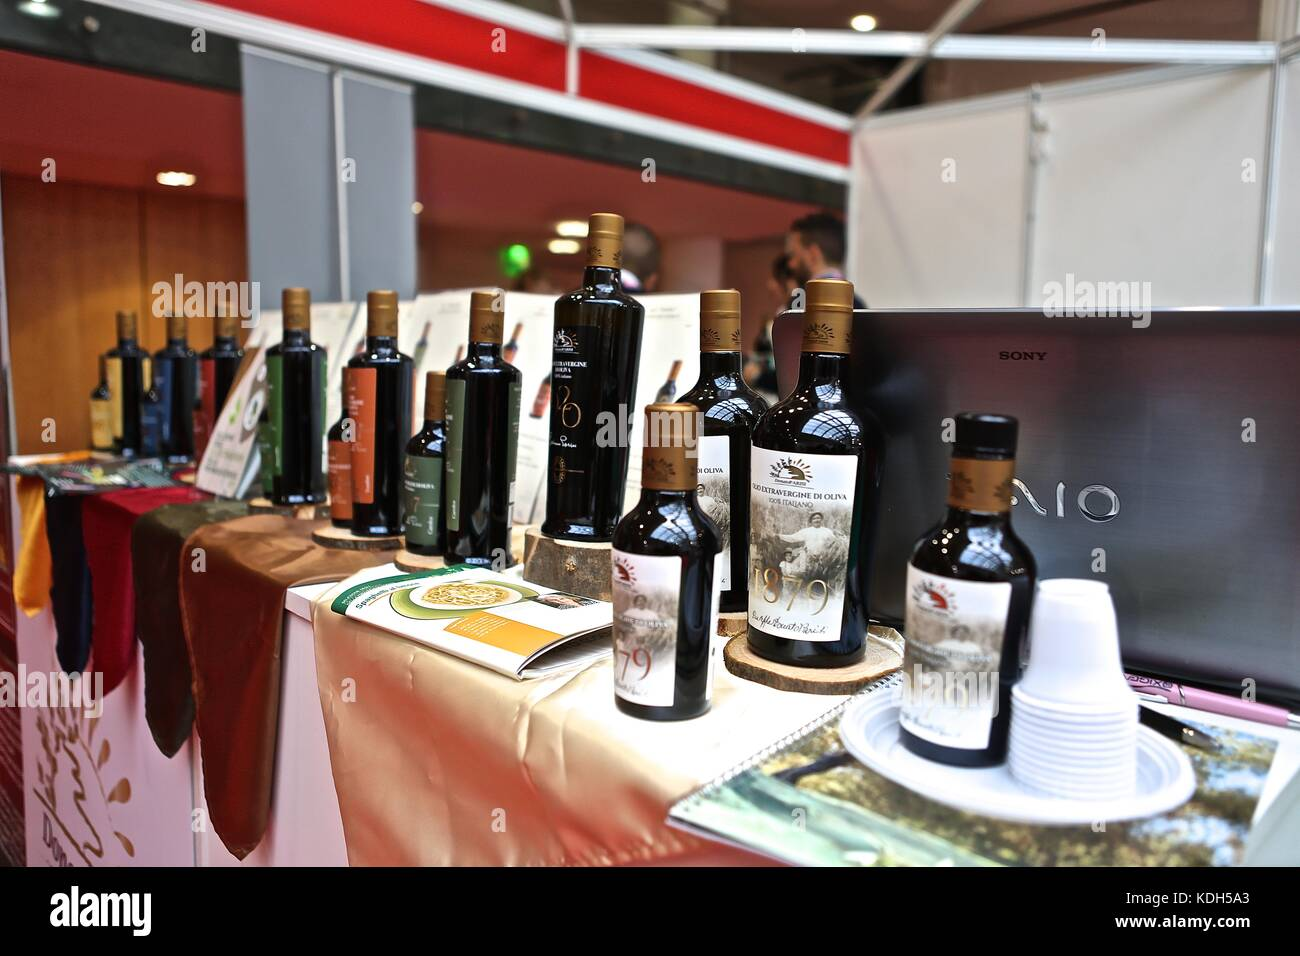 Welcome Italia  2017 Italian chamber of commerce in the UK . Italian foods wines olive oils and coffees also herbs - Stock Image